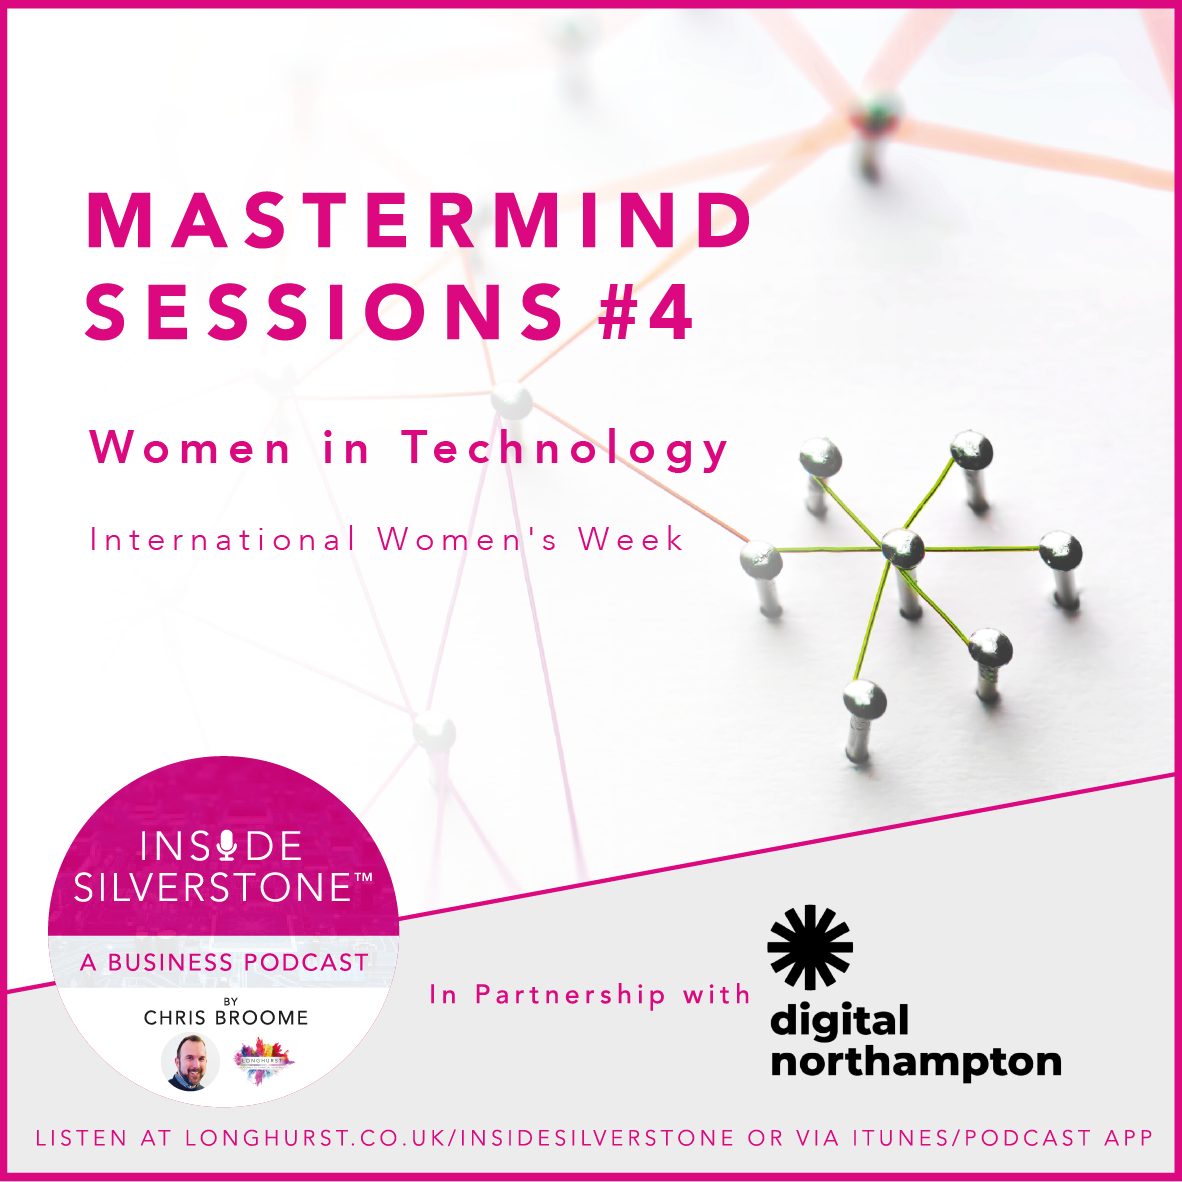 Mastermind Sessions #4 'Women in Technology'